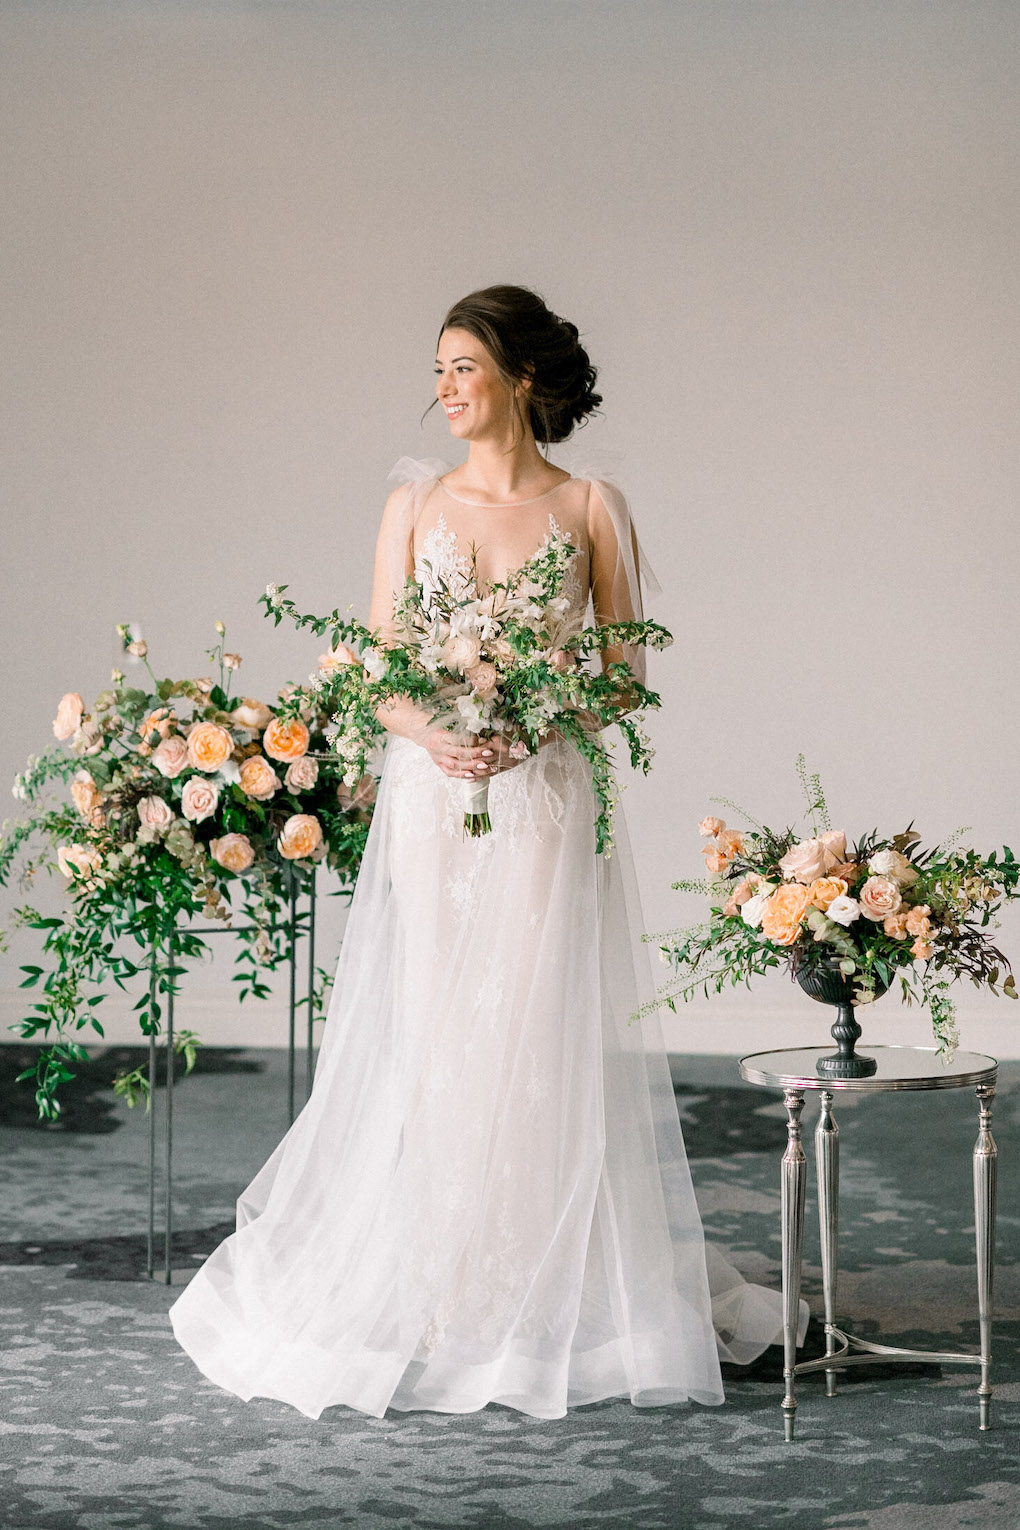 Indoor bridal photos: Soft and Subtle Palettes of Spring Blossoms | Editorial Shoot at The Renaissance Pittsburgh by Exhale Events. See more inspiration at exhale-events.com!